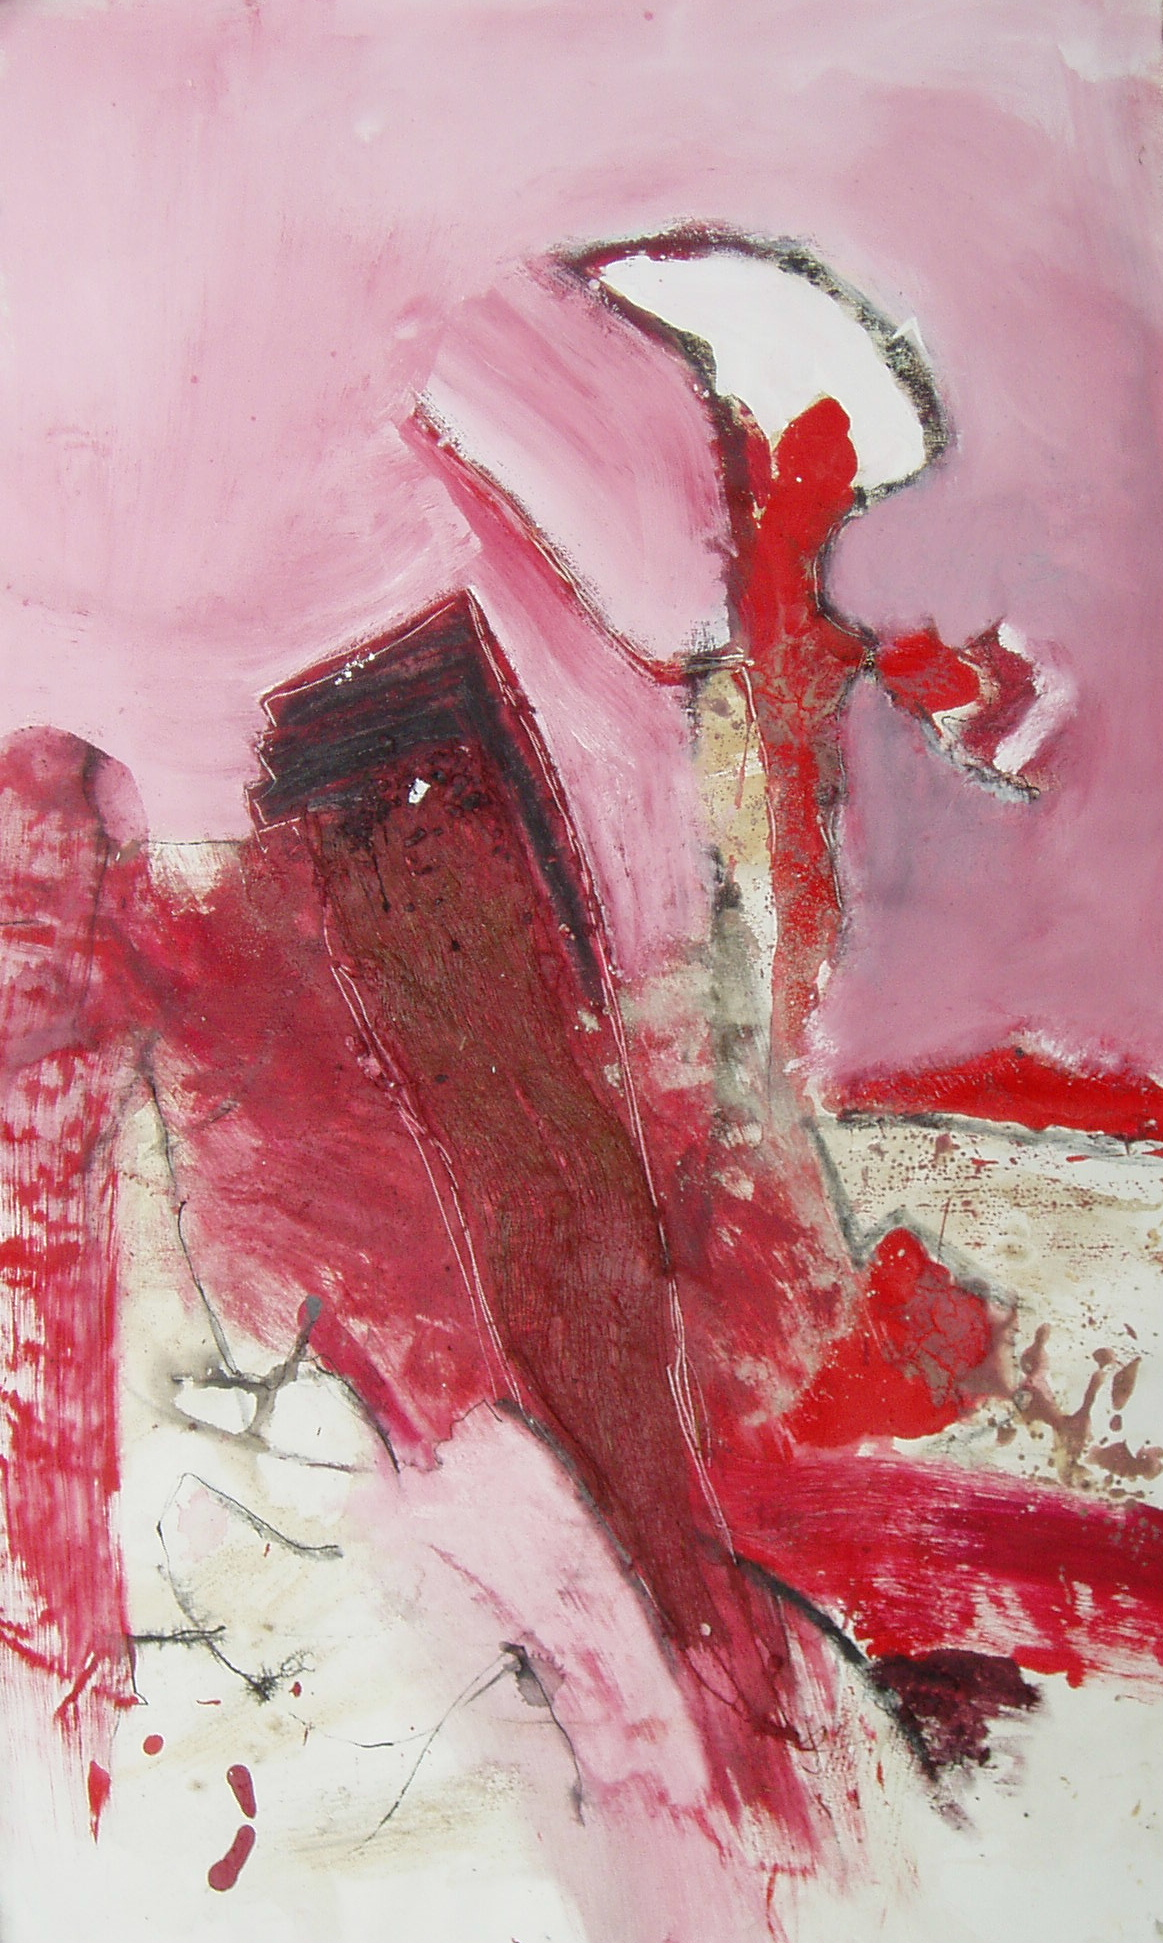 Lady in red, 2008, 60x100cm, Mischtechnik / Leinwand